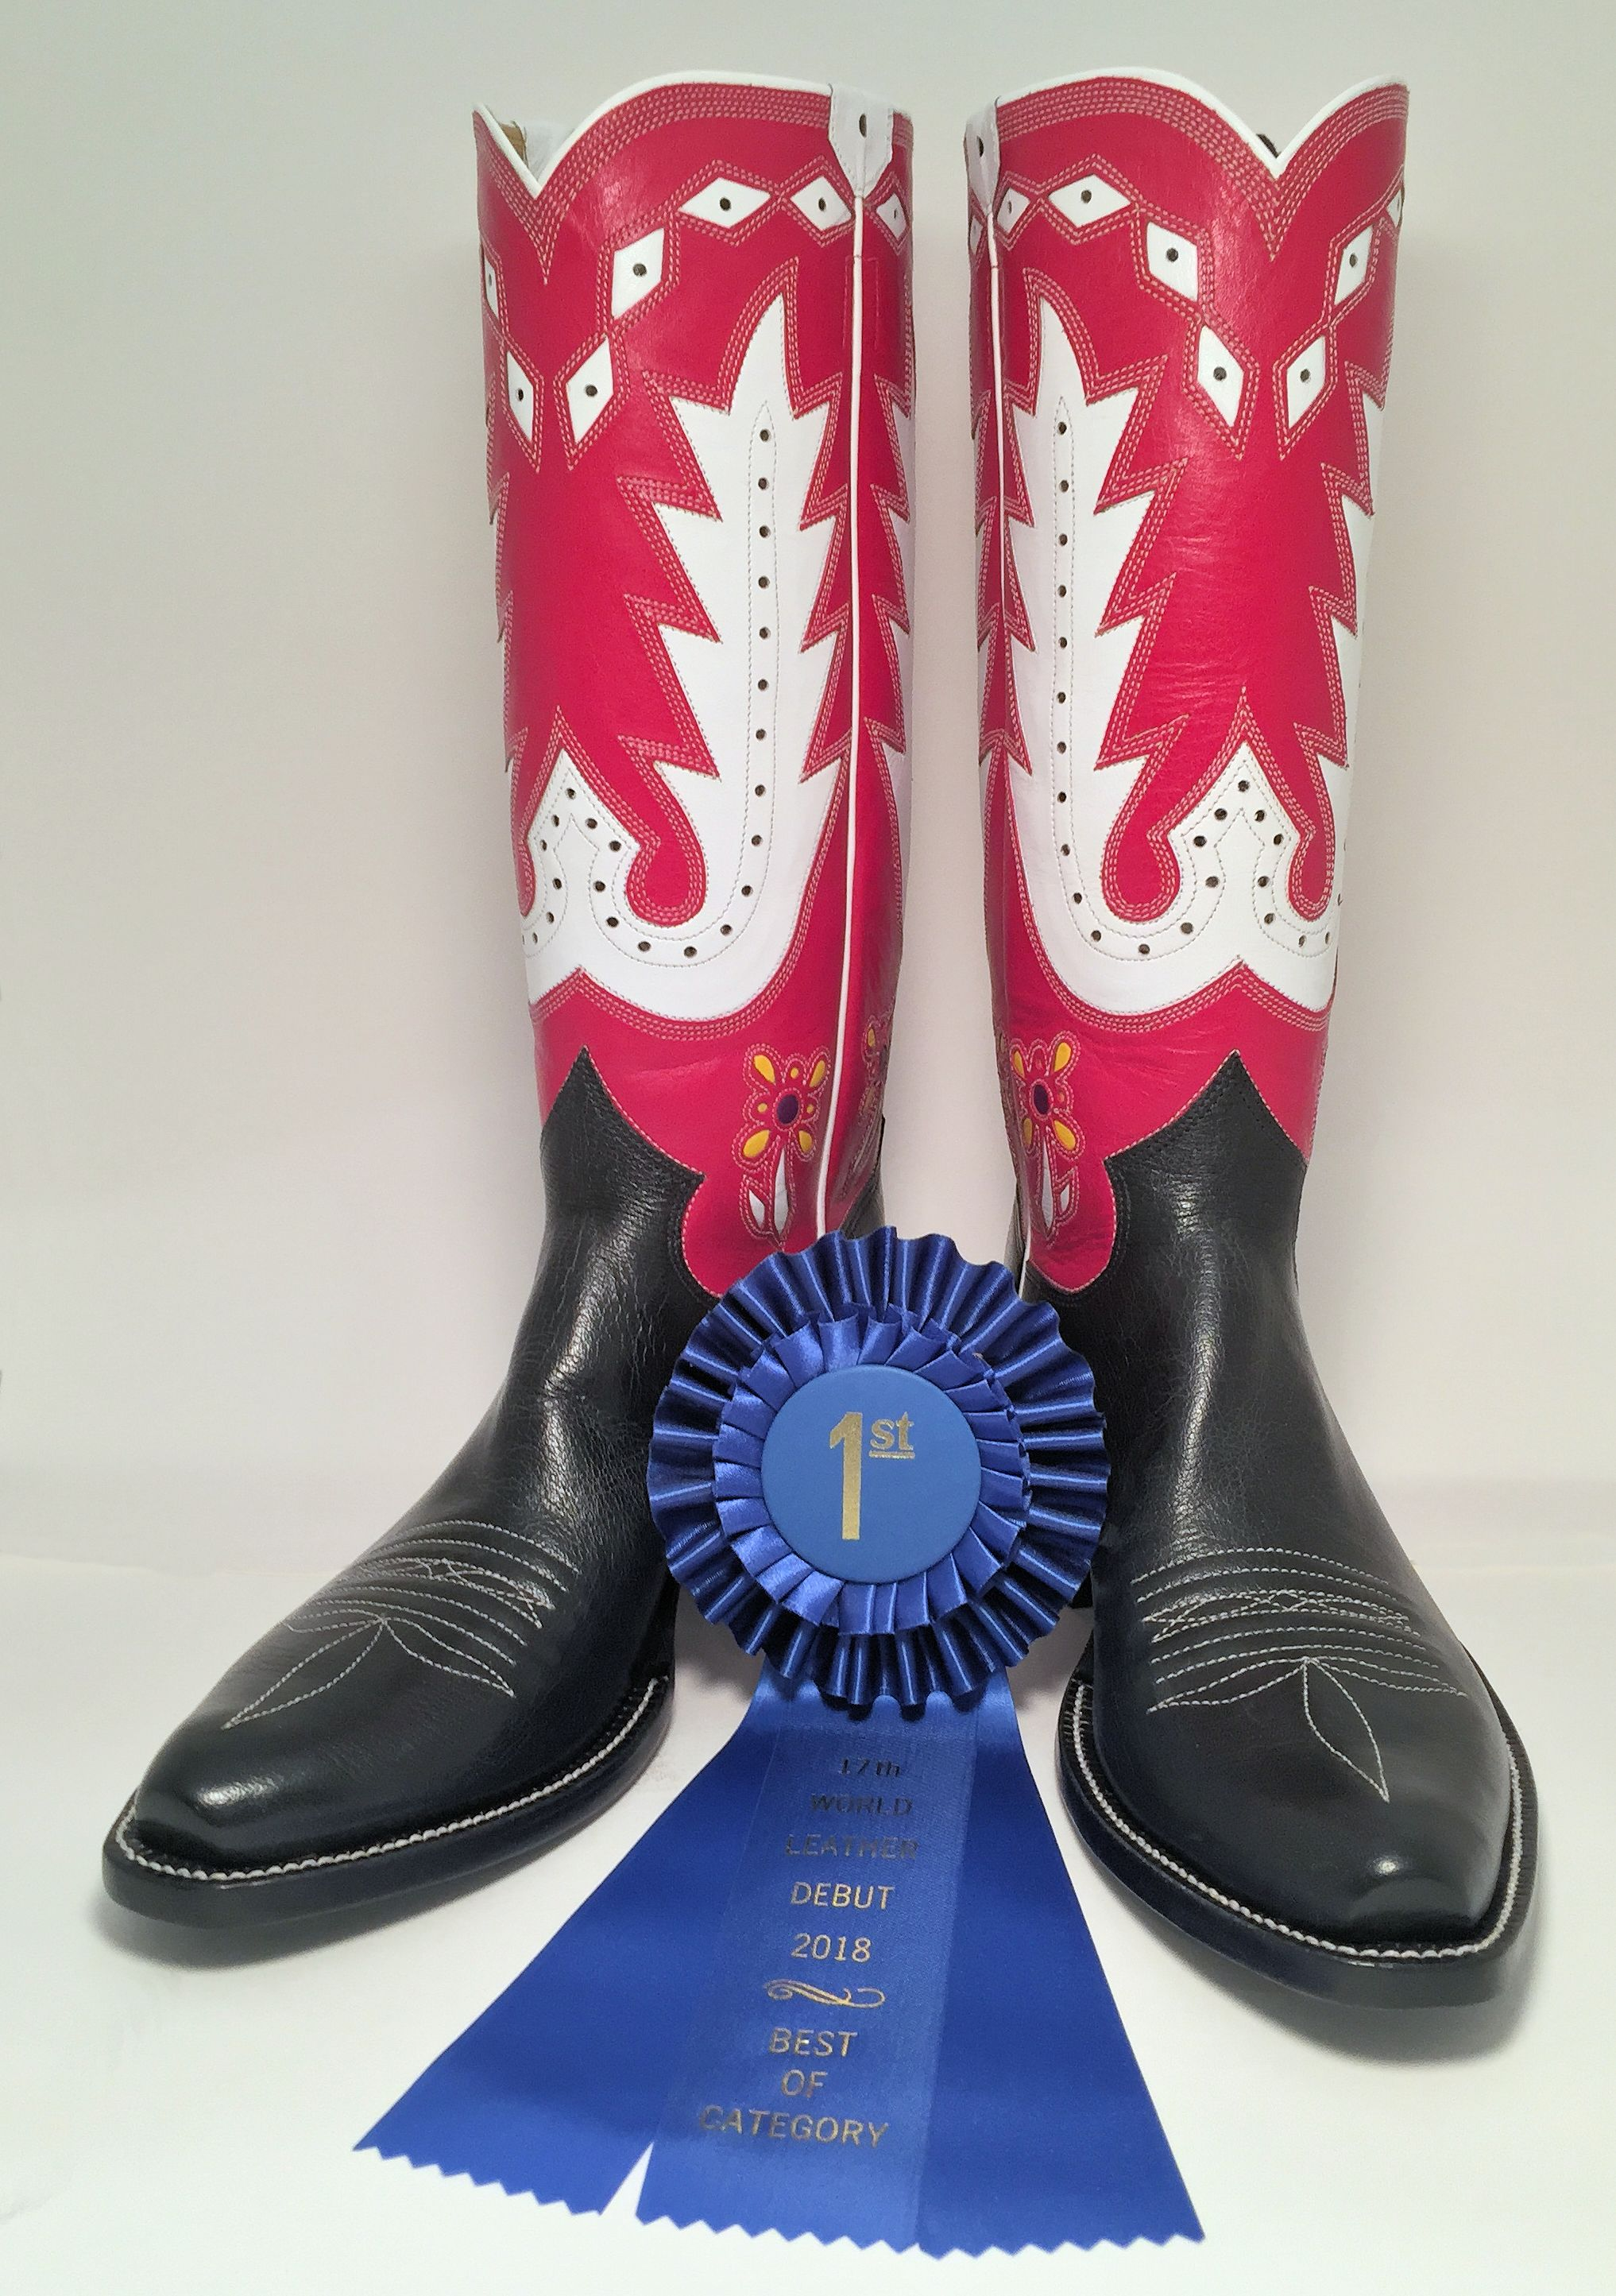 ACCOLADES - 2018 Artistry Buckle, Boot & Saddle Makers Roundup2018 Best of The Tennessee Craft Exhibit2018 Blue Ribbon, World Leather Debut2017 White Ribbon, World Leather Debut2016 Top Stitching Buckle, Boot & Saddle Makers Round up2016 Best of the Tennessee Craft Exhibit2015 Semi Finalist, Garden & Gun Made in the South Awards